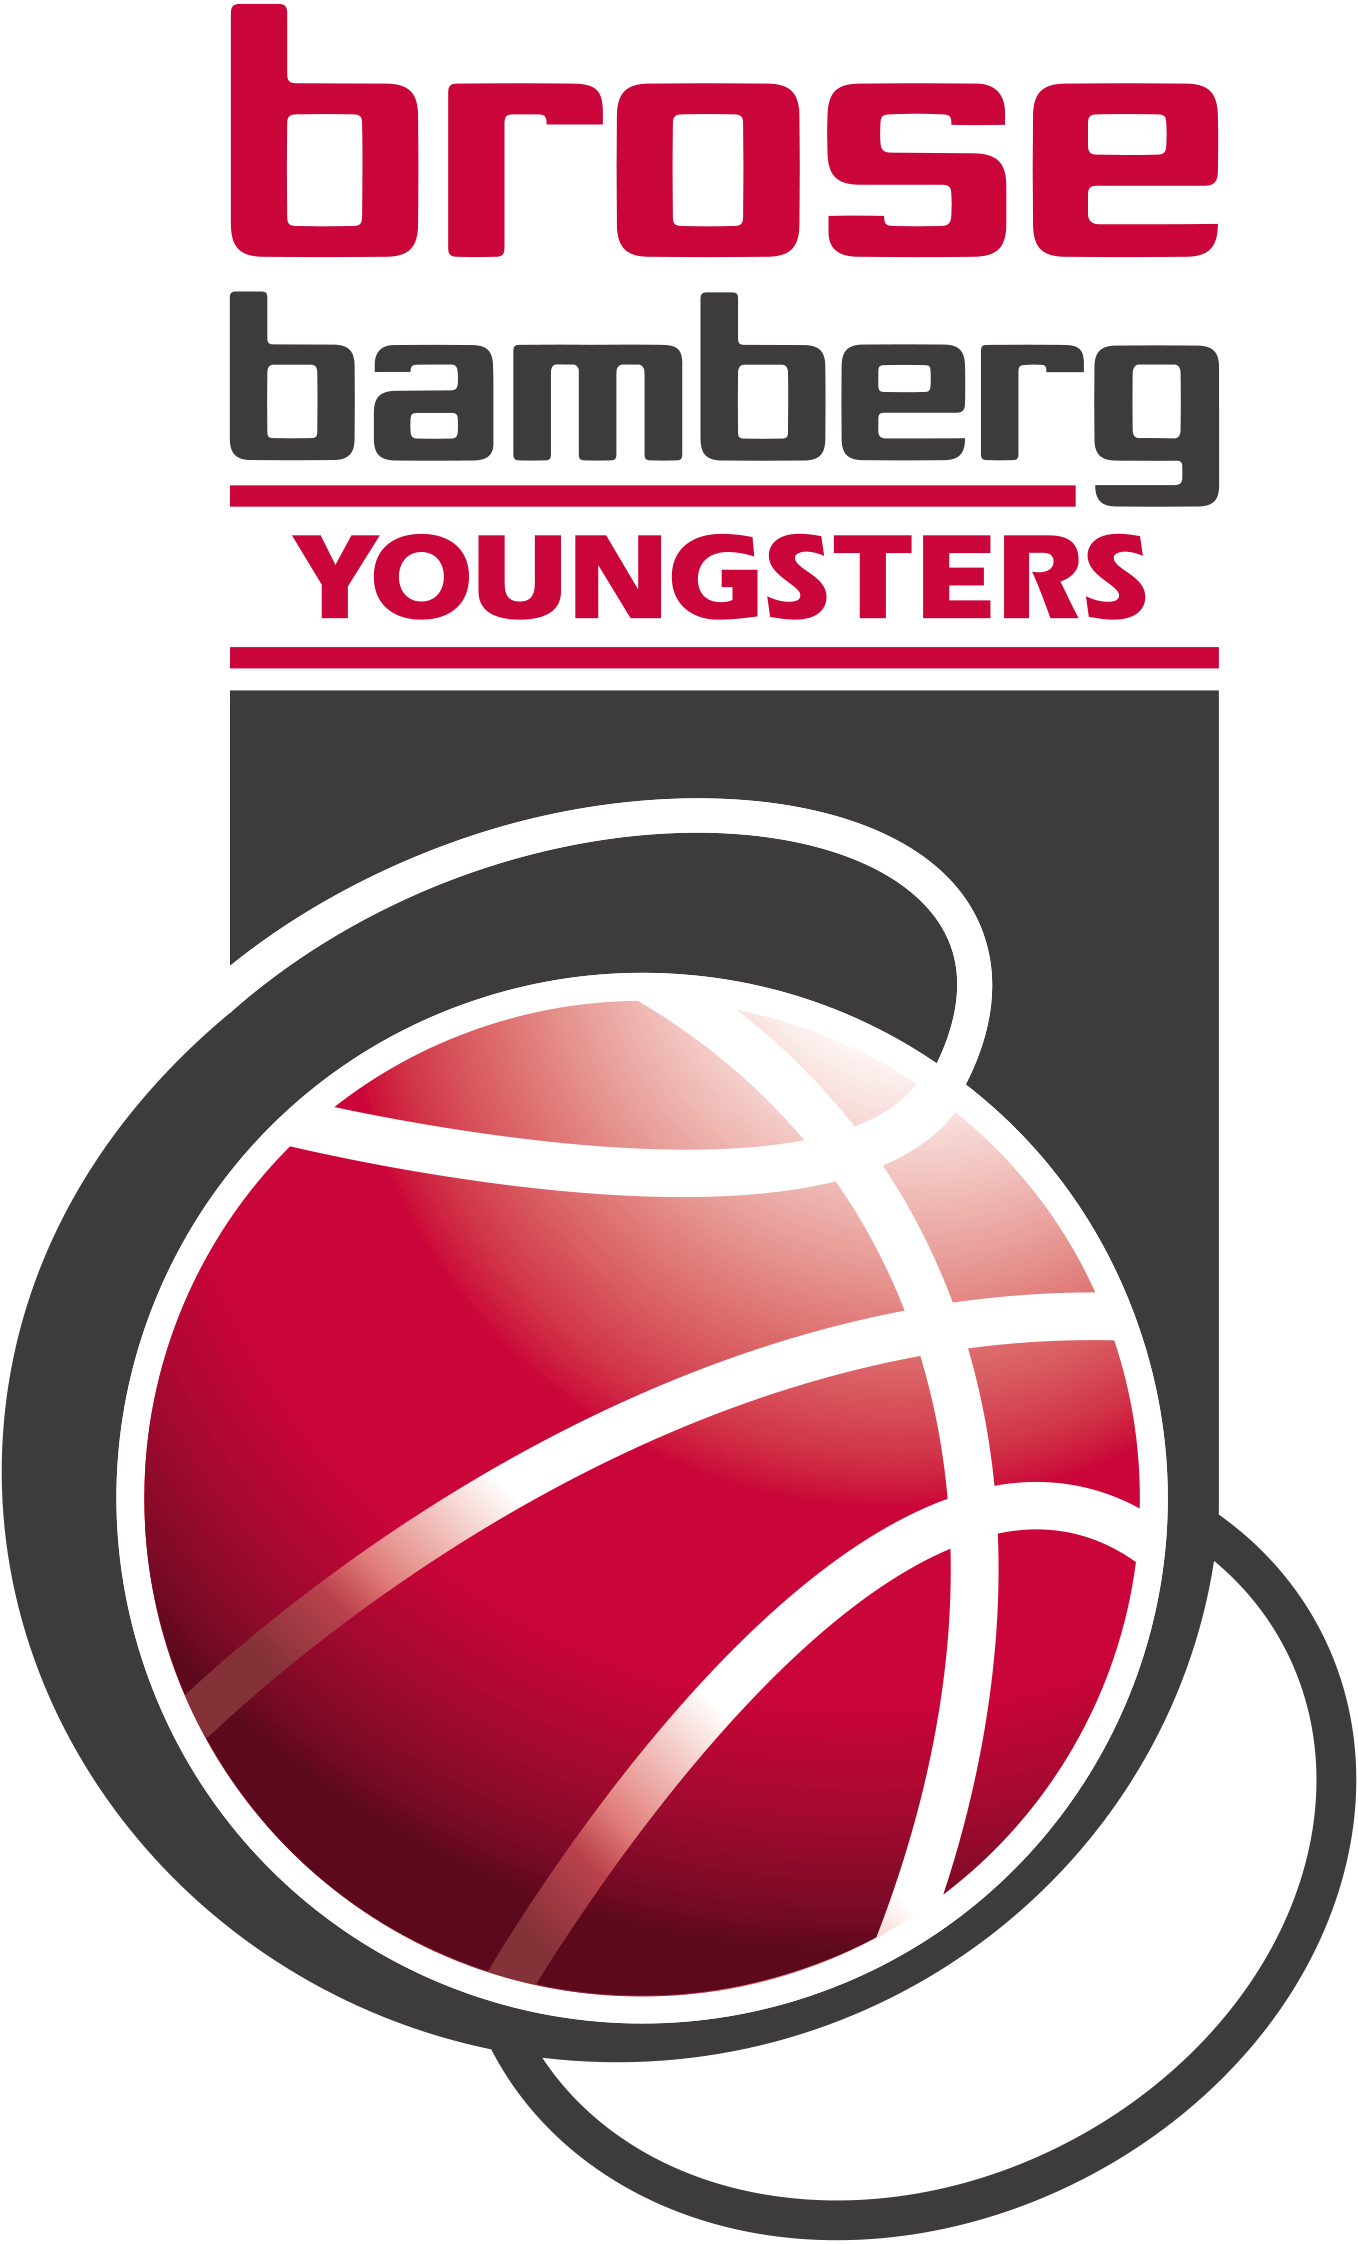 logo-brose-bamberg-youngsters